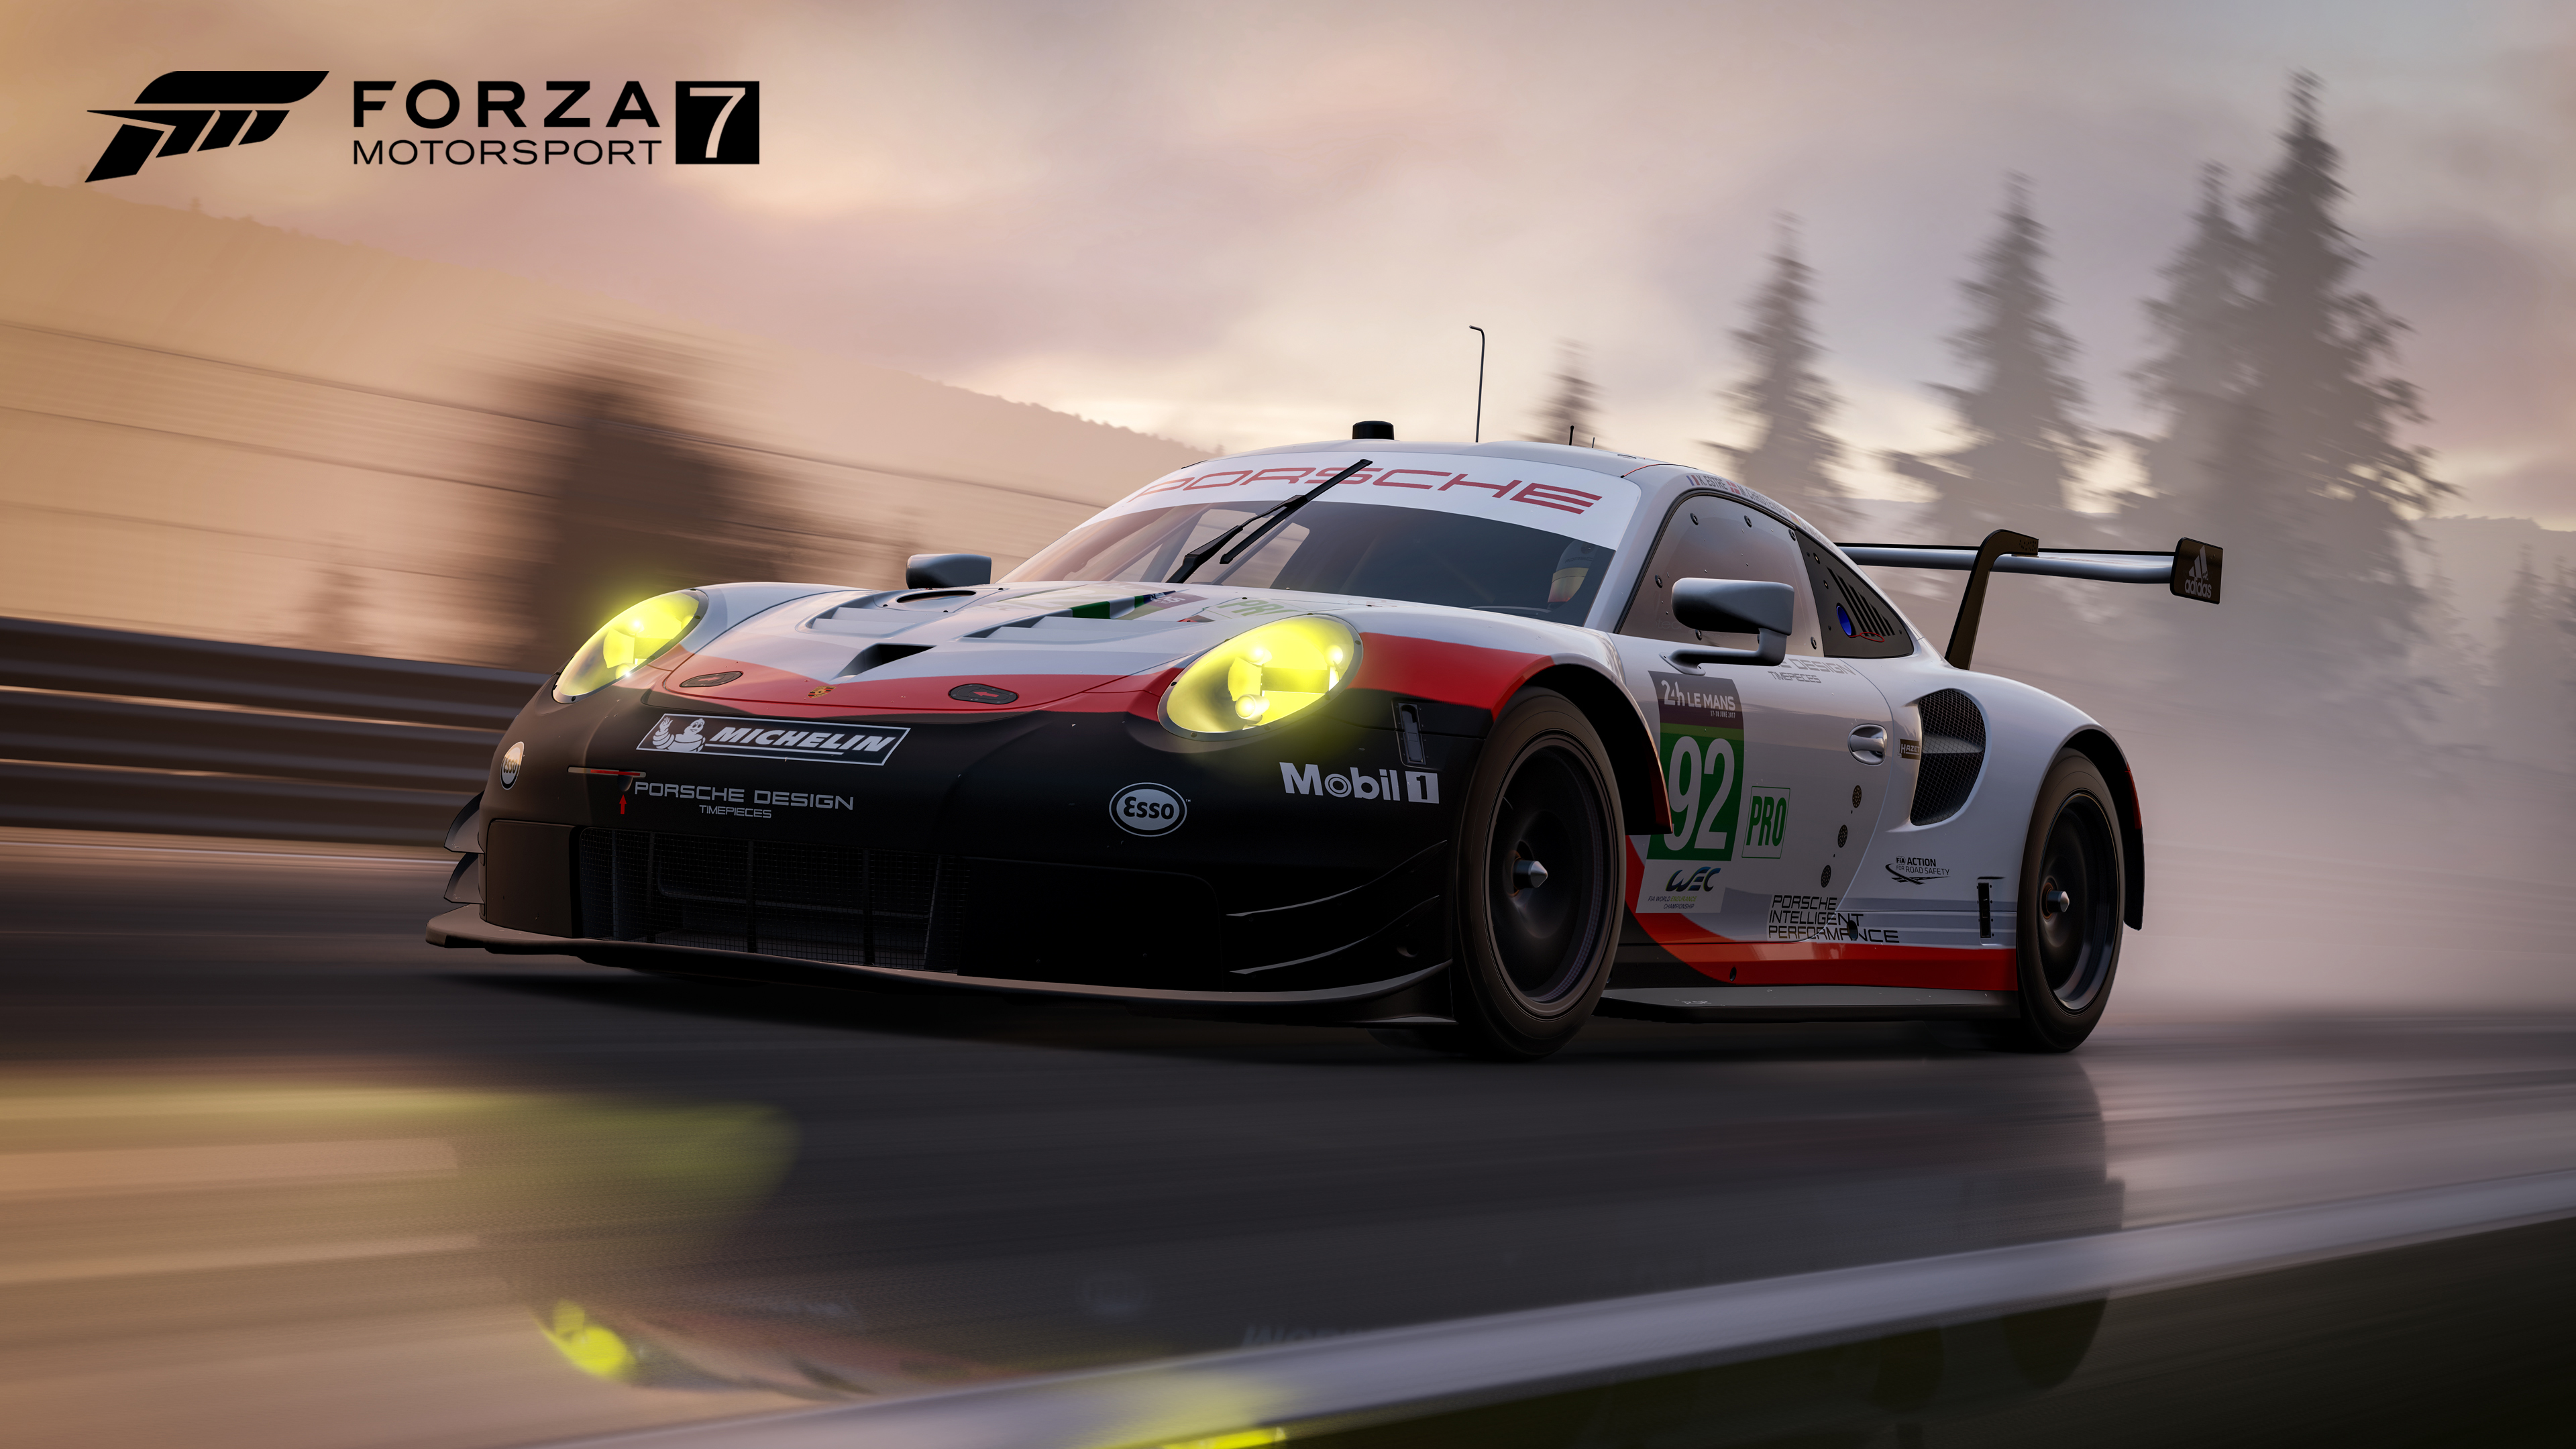 porsche 911 forza motorsport 7 4k hd games 4k wallpapers. Black Bedroom Furniture Sets. Home Design Ideas